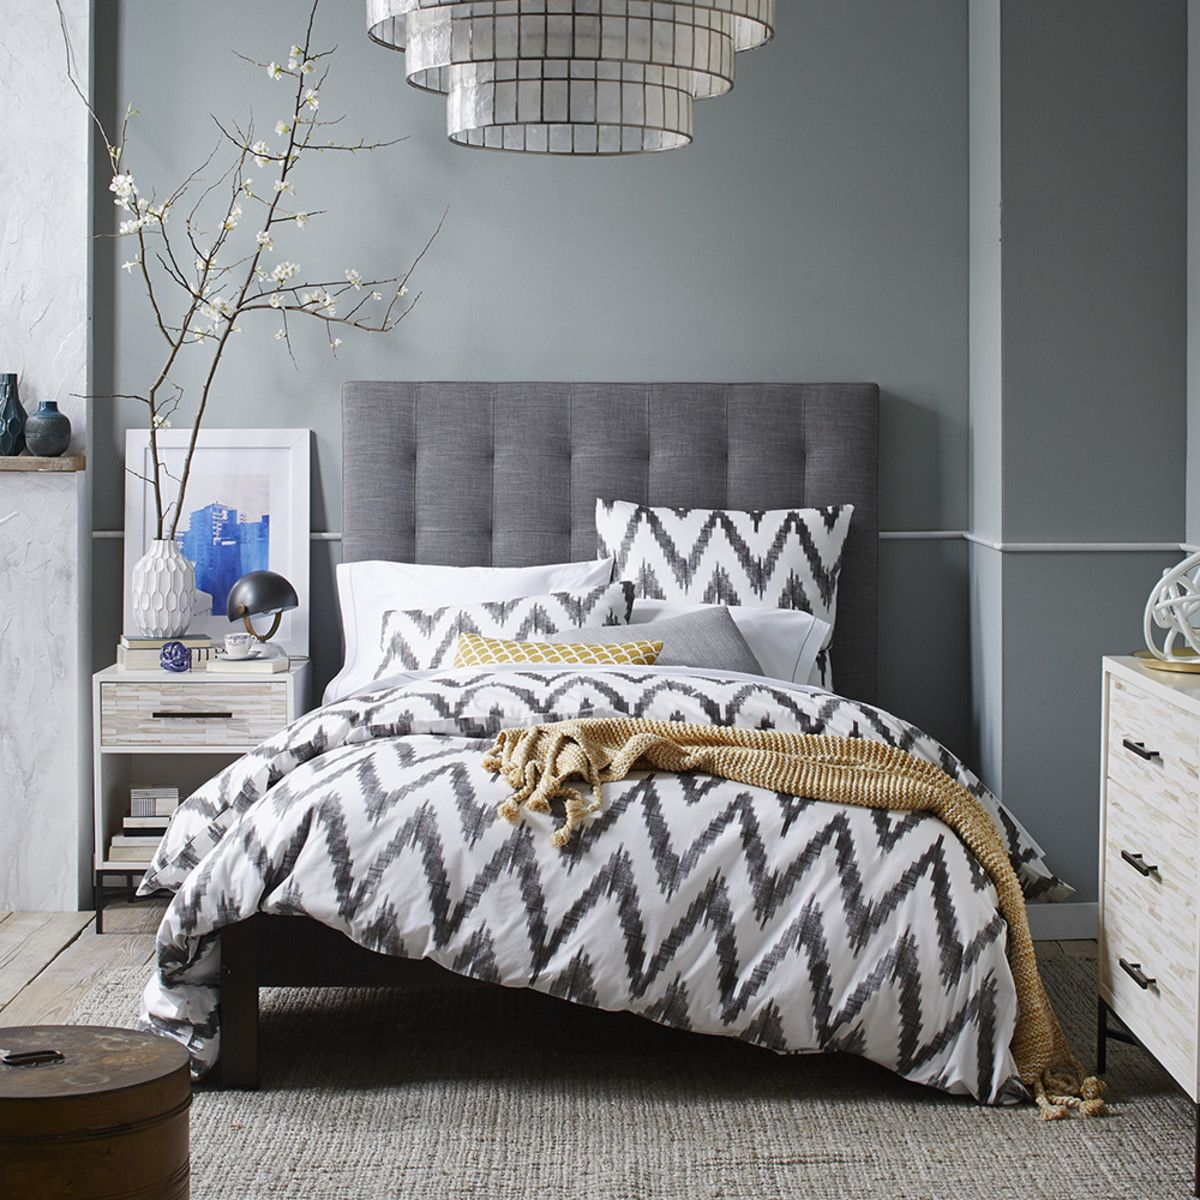 assembly trends headboards pictures west elm wood bed headboard fabulous with platform